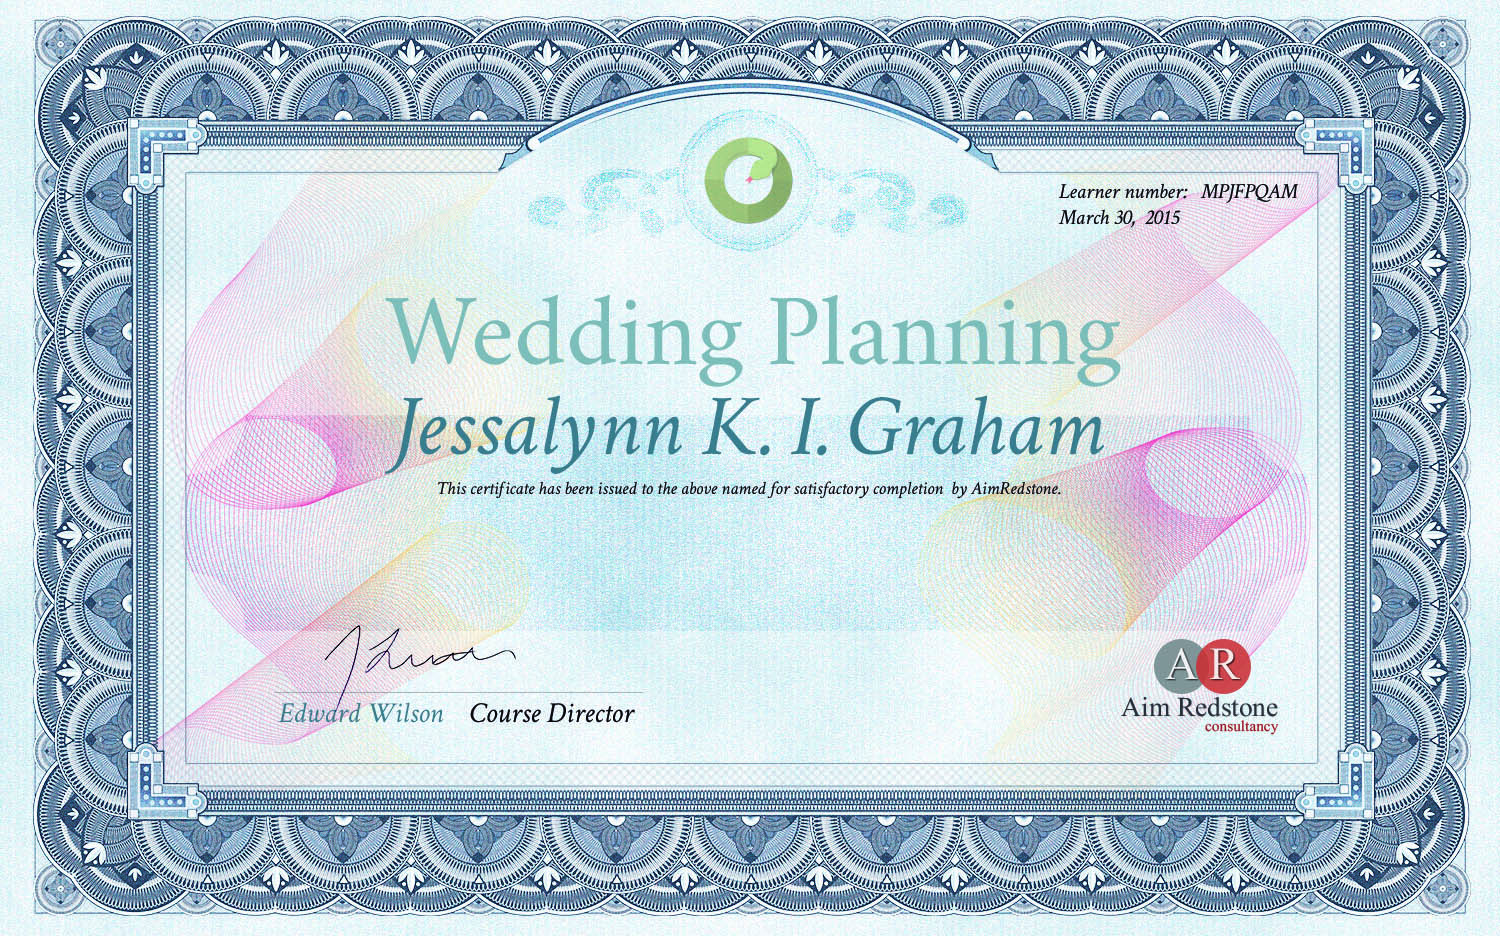 Certified Wedding Planner USA & UK